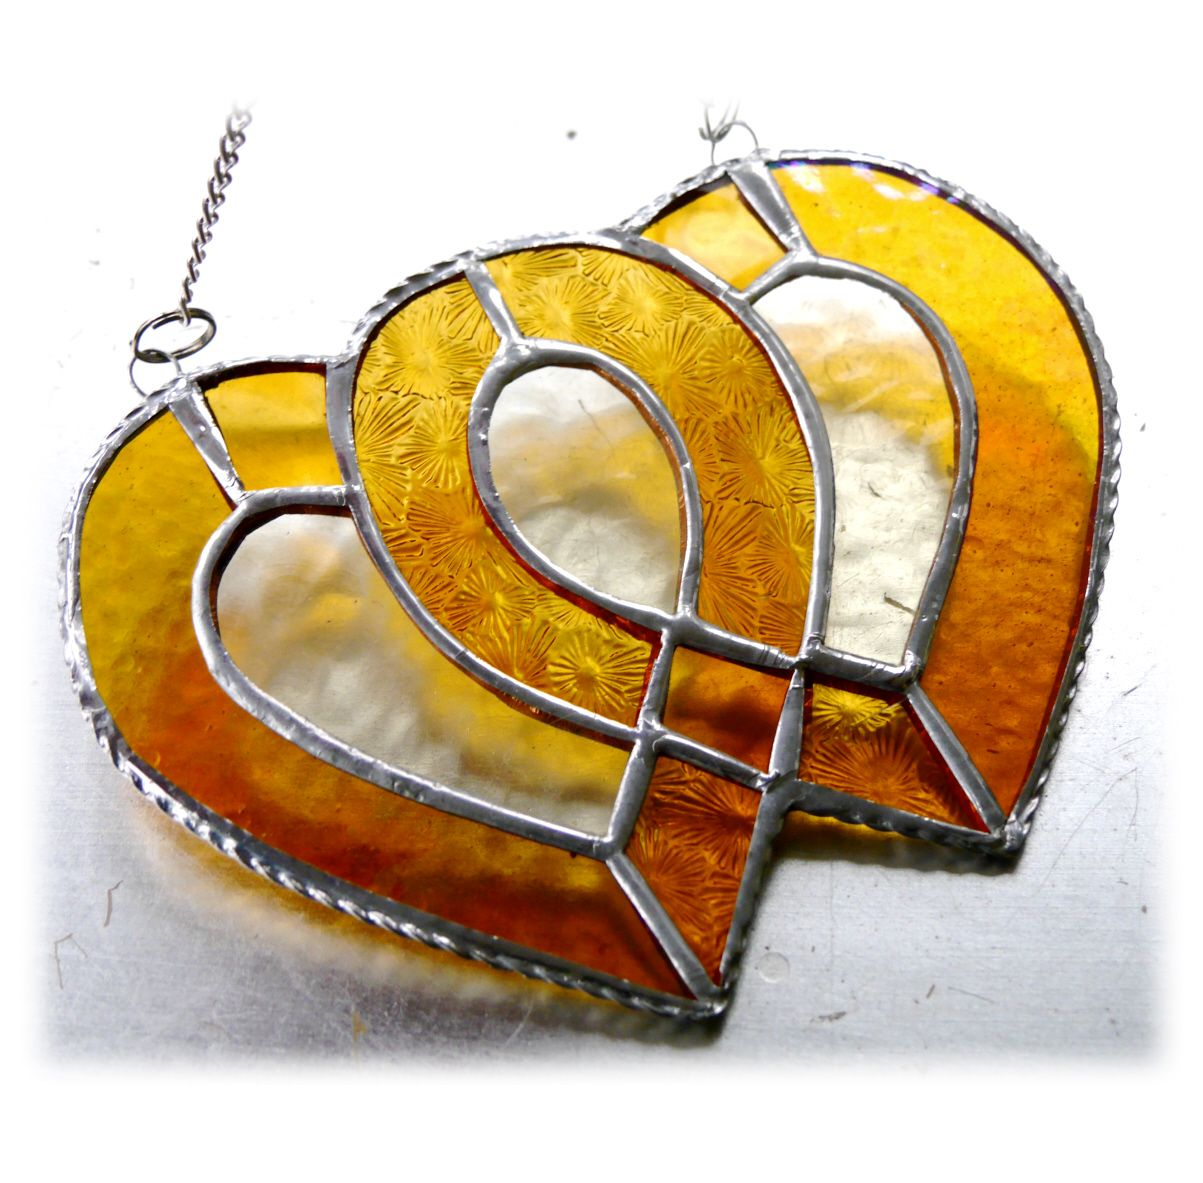 Entwined Heart 017 Gold #1910 FREE 22.50